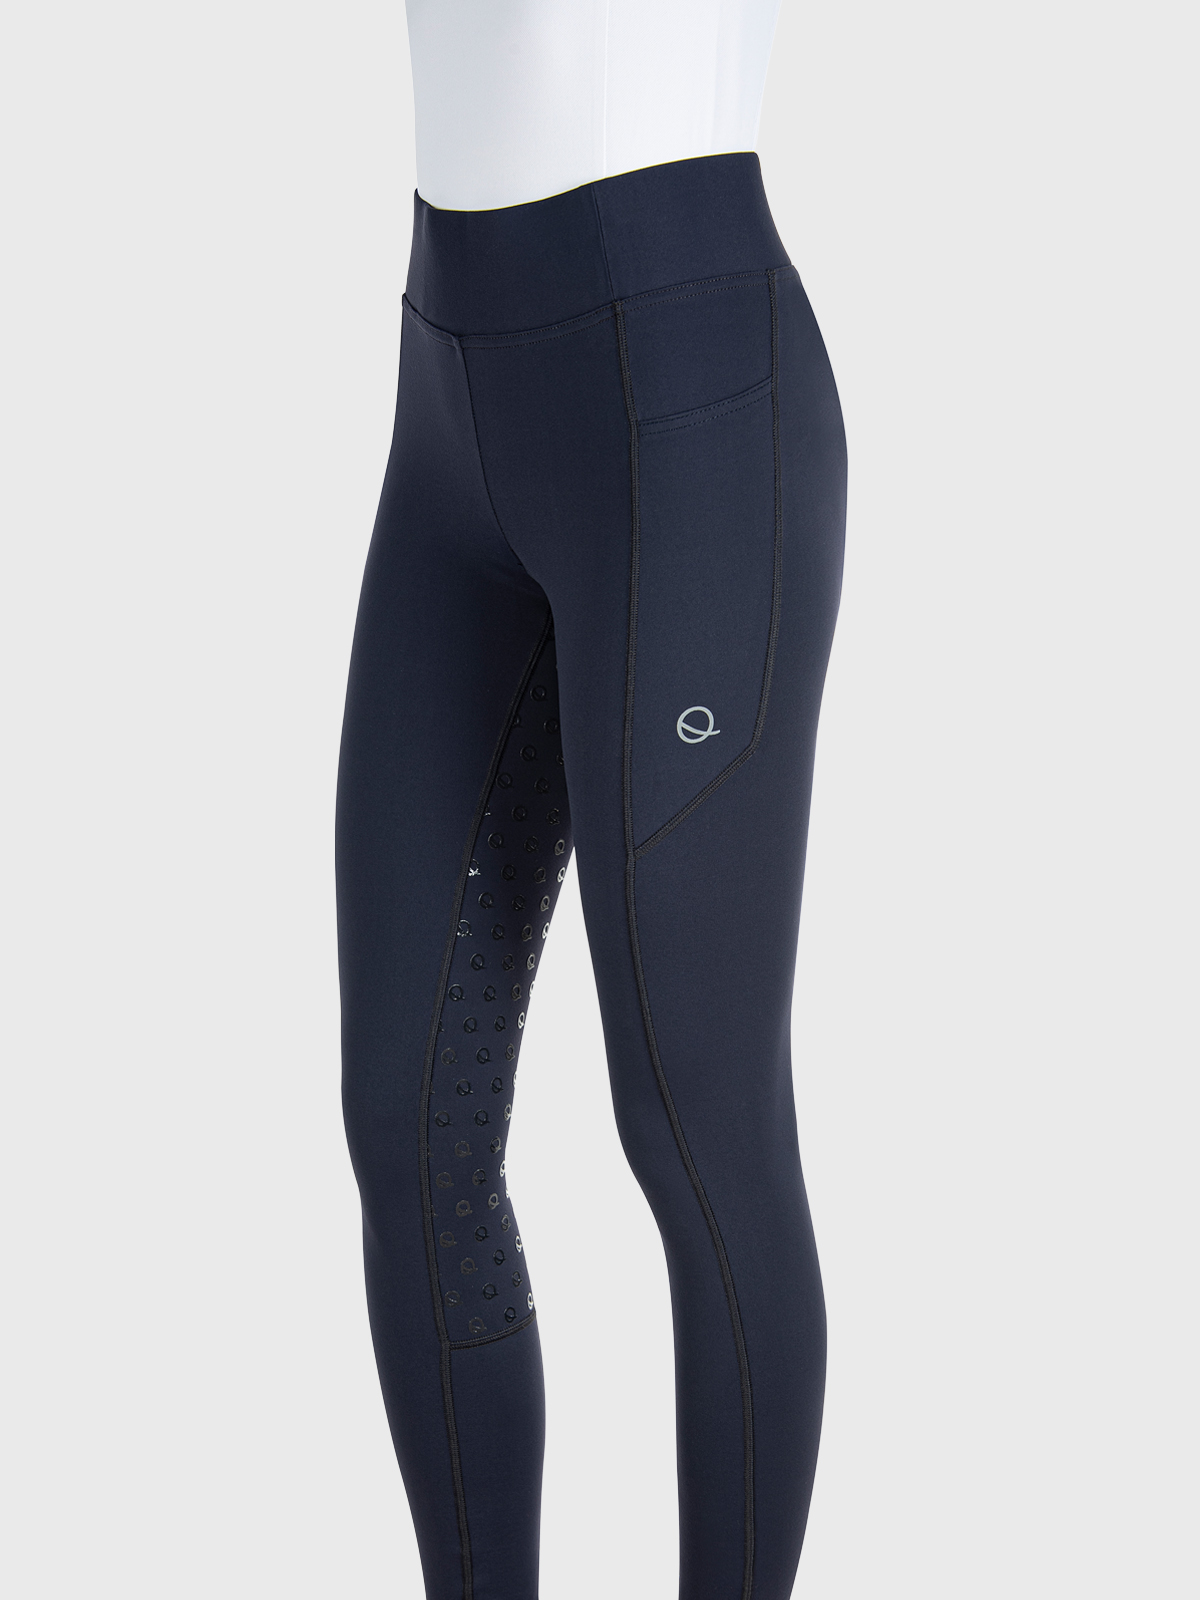 EQODE WOMEN'S RIDING LEGGINGS WITH FULL SEAT 1